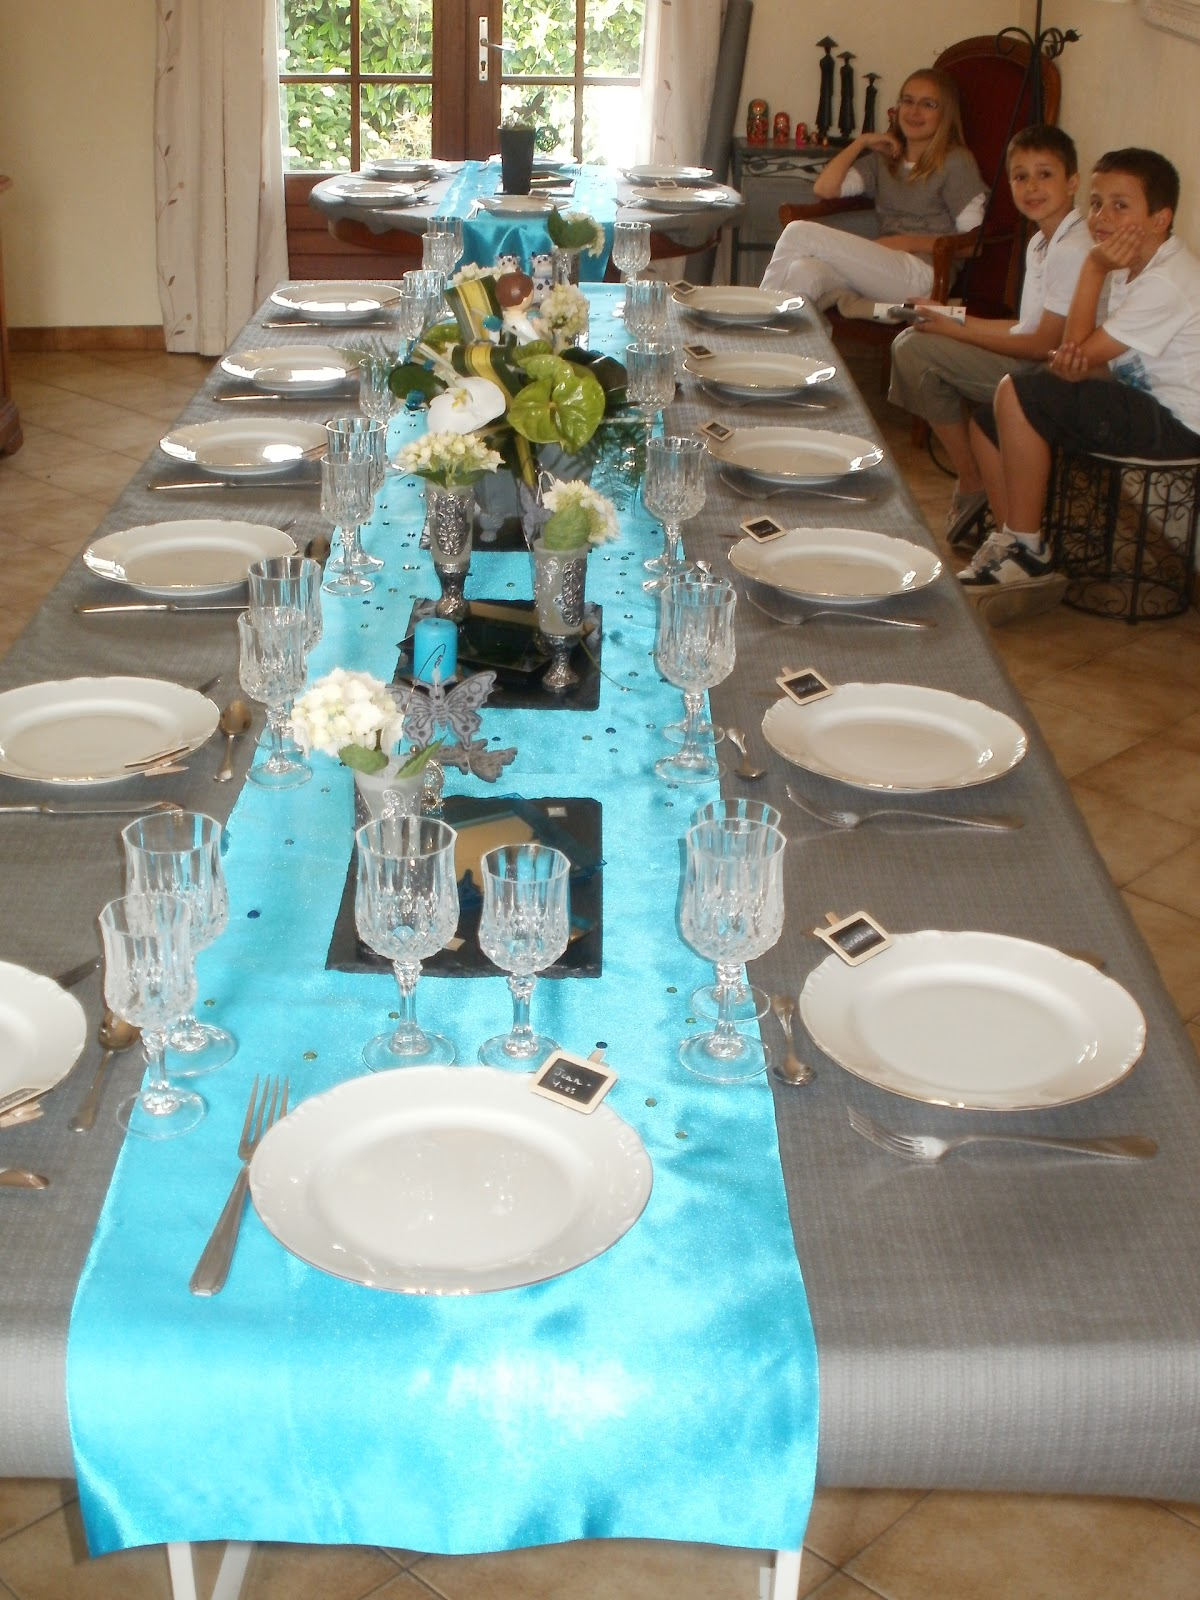 Marvelous deco de table bleu et gris 4 une d co de table for Decoration de table bleu turquoise